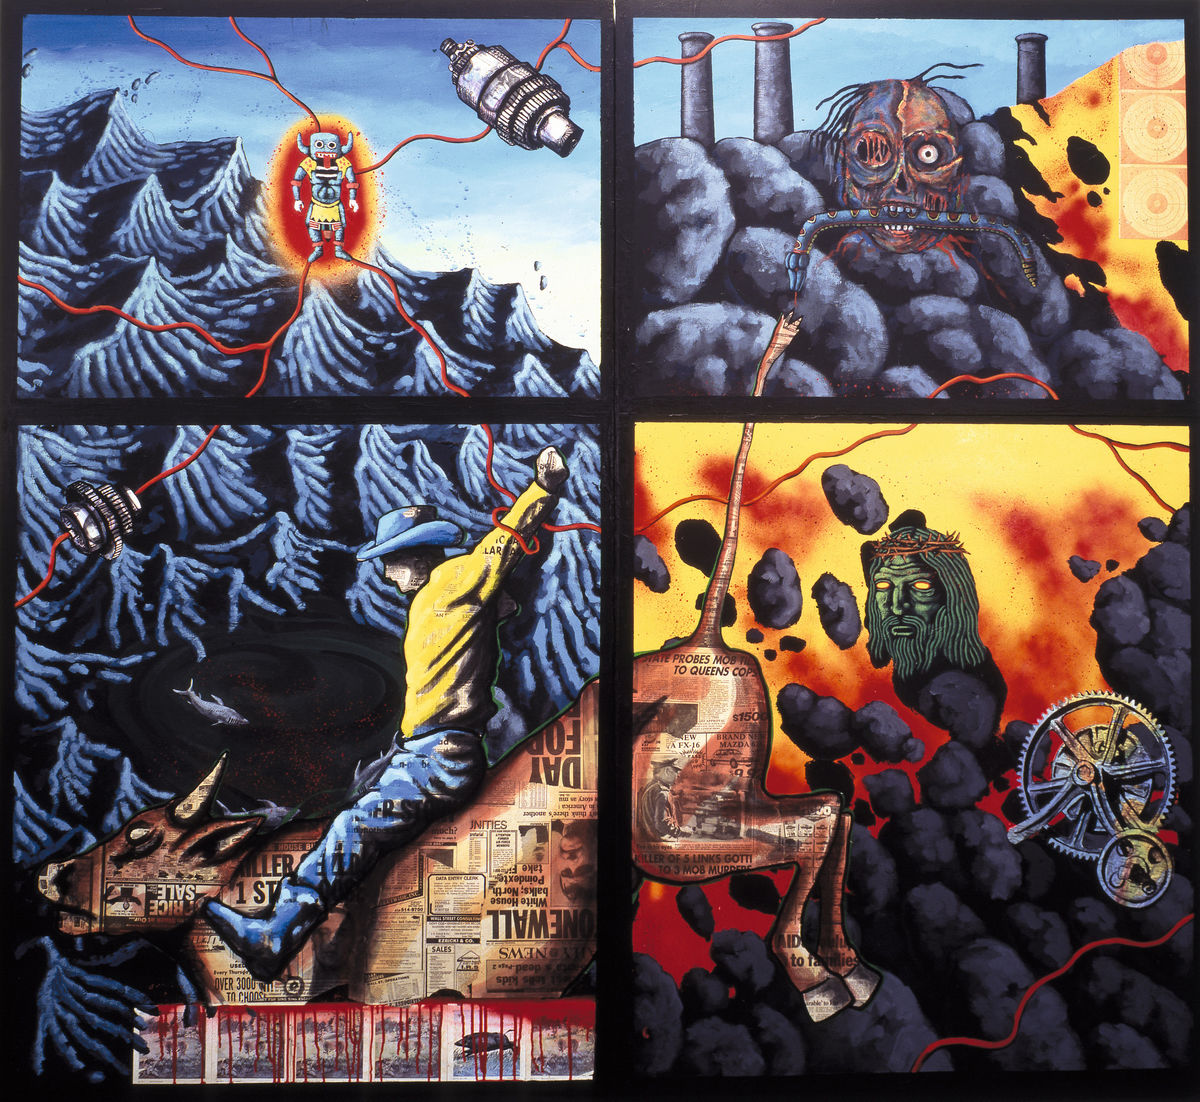 David Wojnarowicz (1954–1992),  The Death of American Spirituality , 1987. Spray paint, acrylic, and collage on plywood, two panels, 81 × 88 in. (205.7 × 223.5 cm) overall. Private collection. © 1987 The Peter Hujar Archive LLC, courtesy Pace/MacGill Gallery, New York.